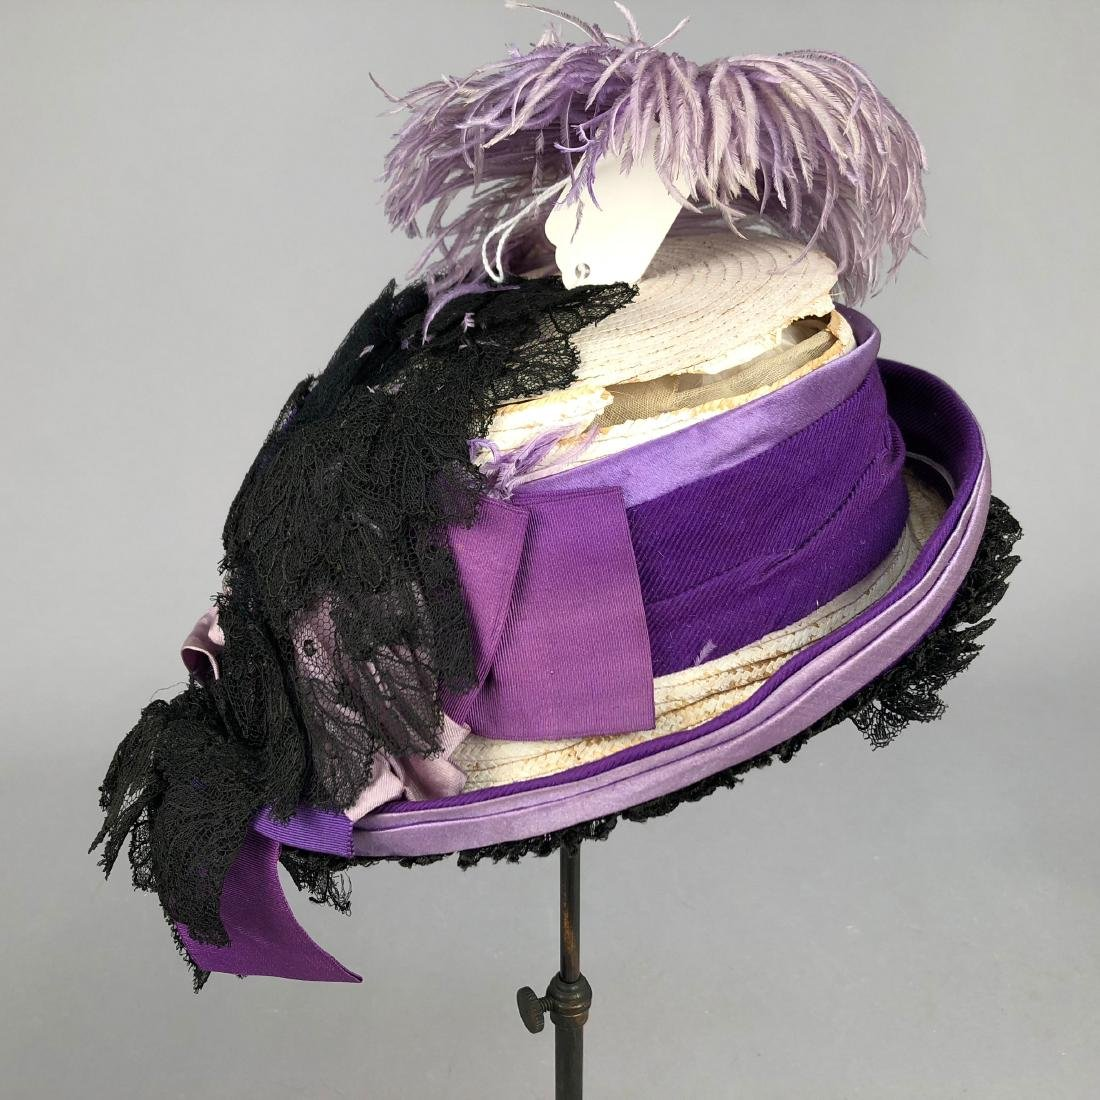 PURPLE TOQUE MODELED by VIVIAN LEIGH, 1870s - 4